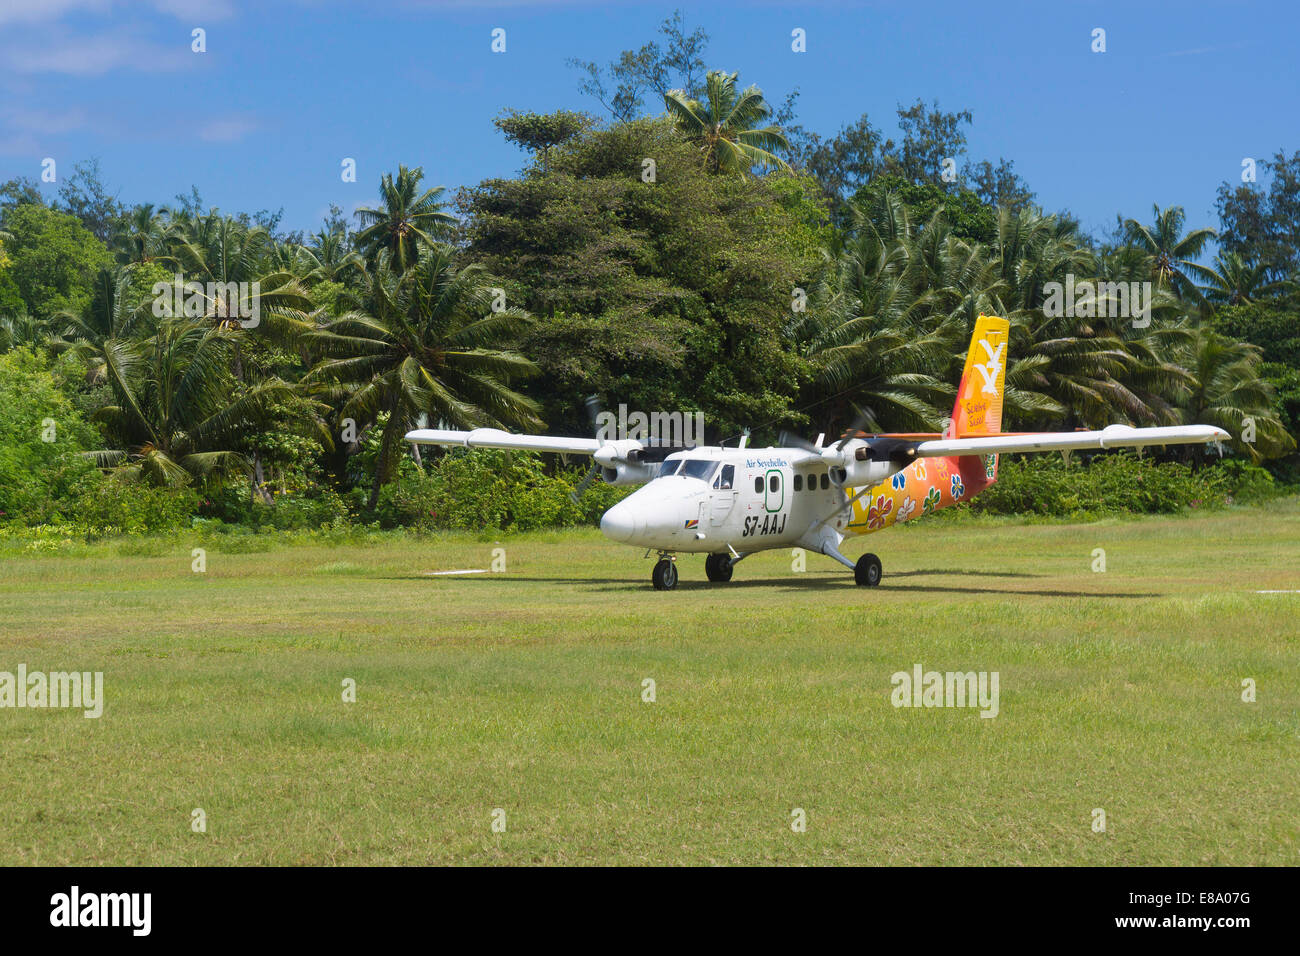 Aircraft 'Twin Otter' of the AIR SEYCHELLES airline at the airport of Denis Island, Seychelles - Stock Image